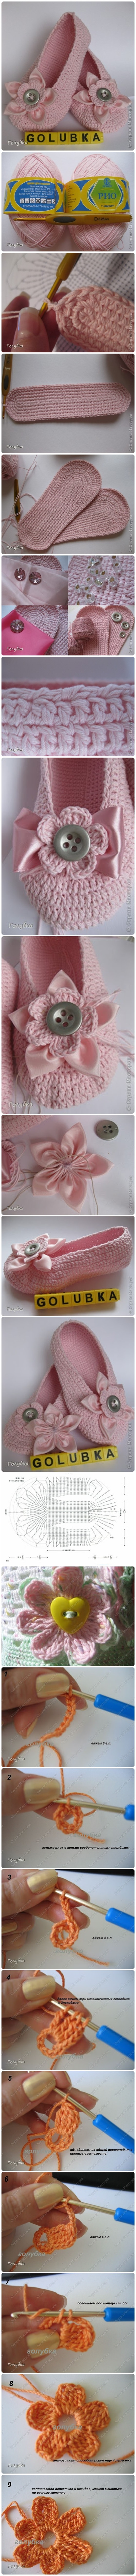 Crochet Ballet SlippersM Wonderful DIY Crochet Ballet Slippers